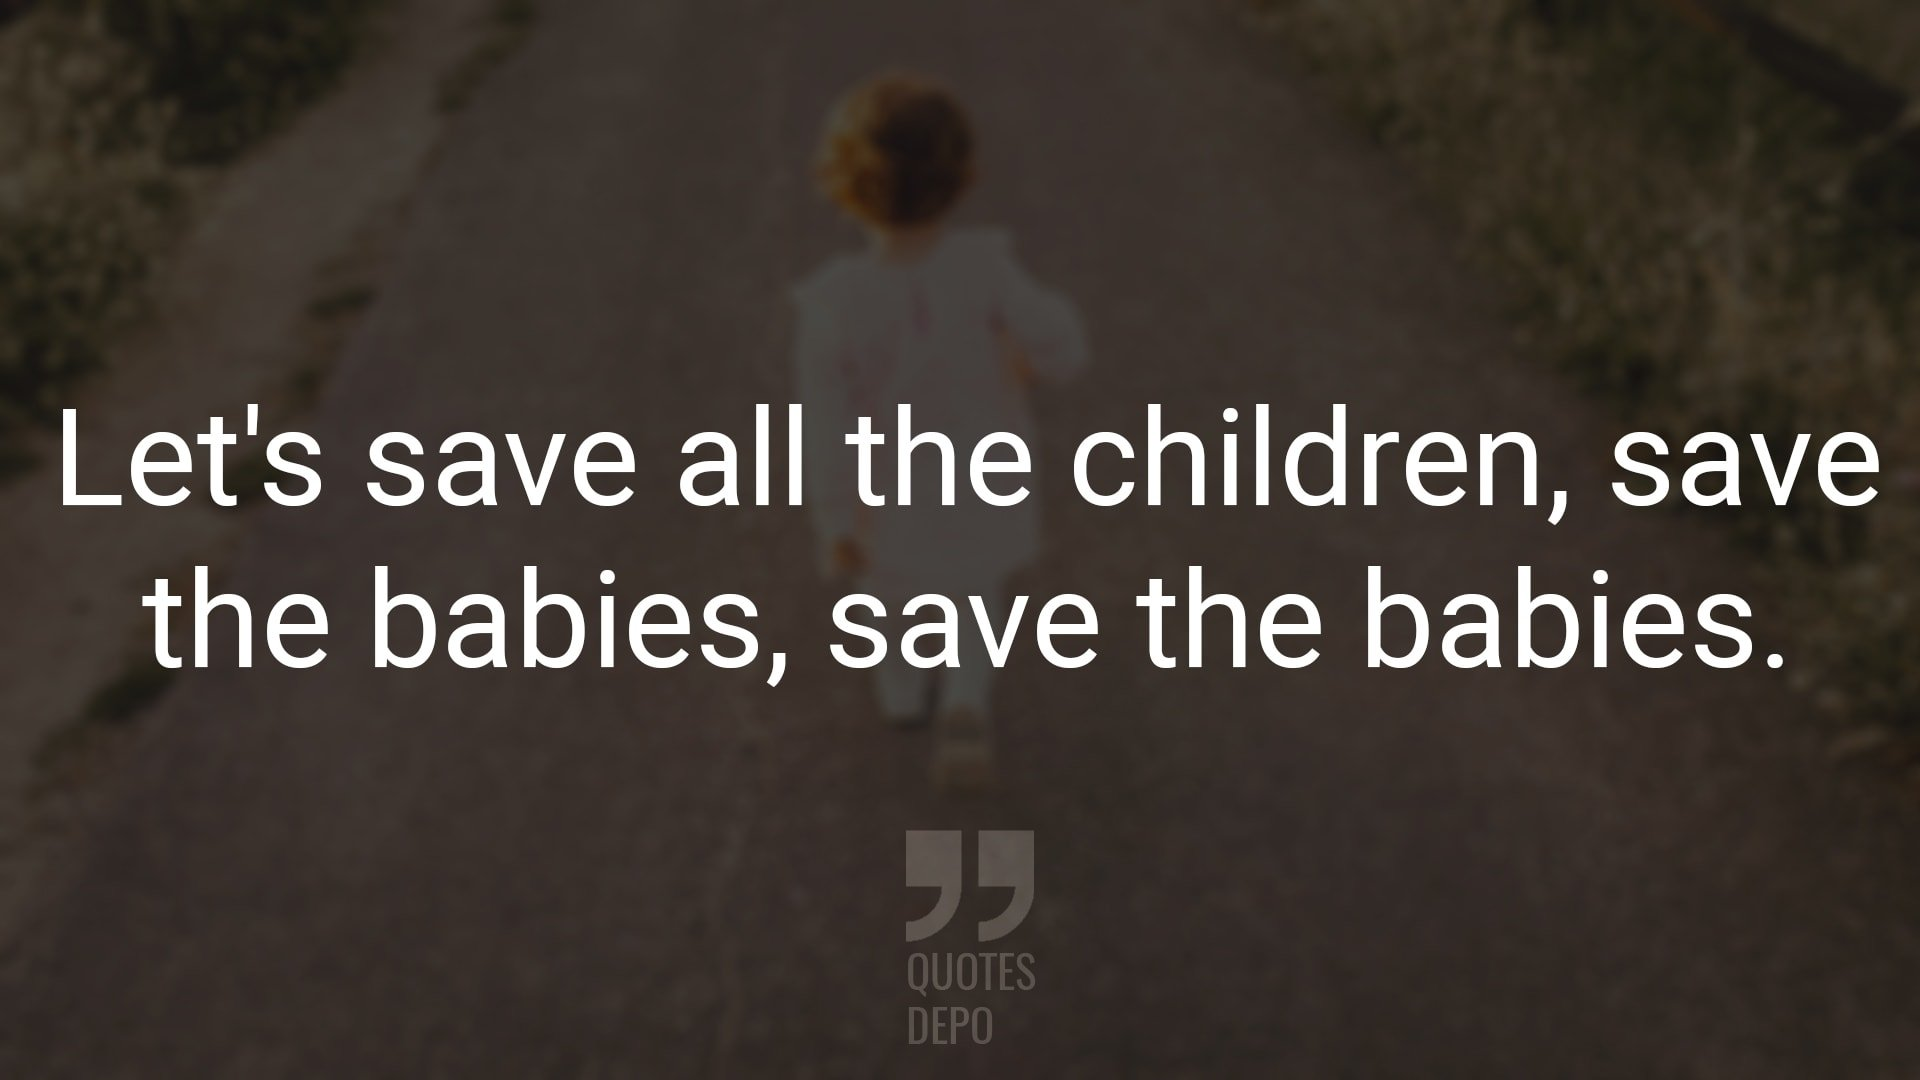 let's save all the children